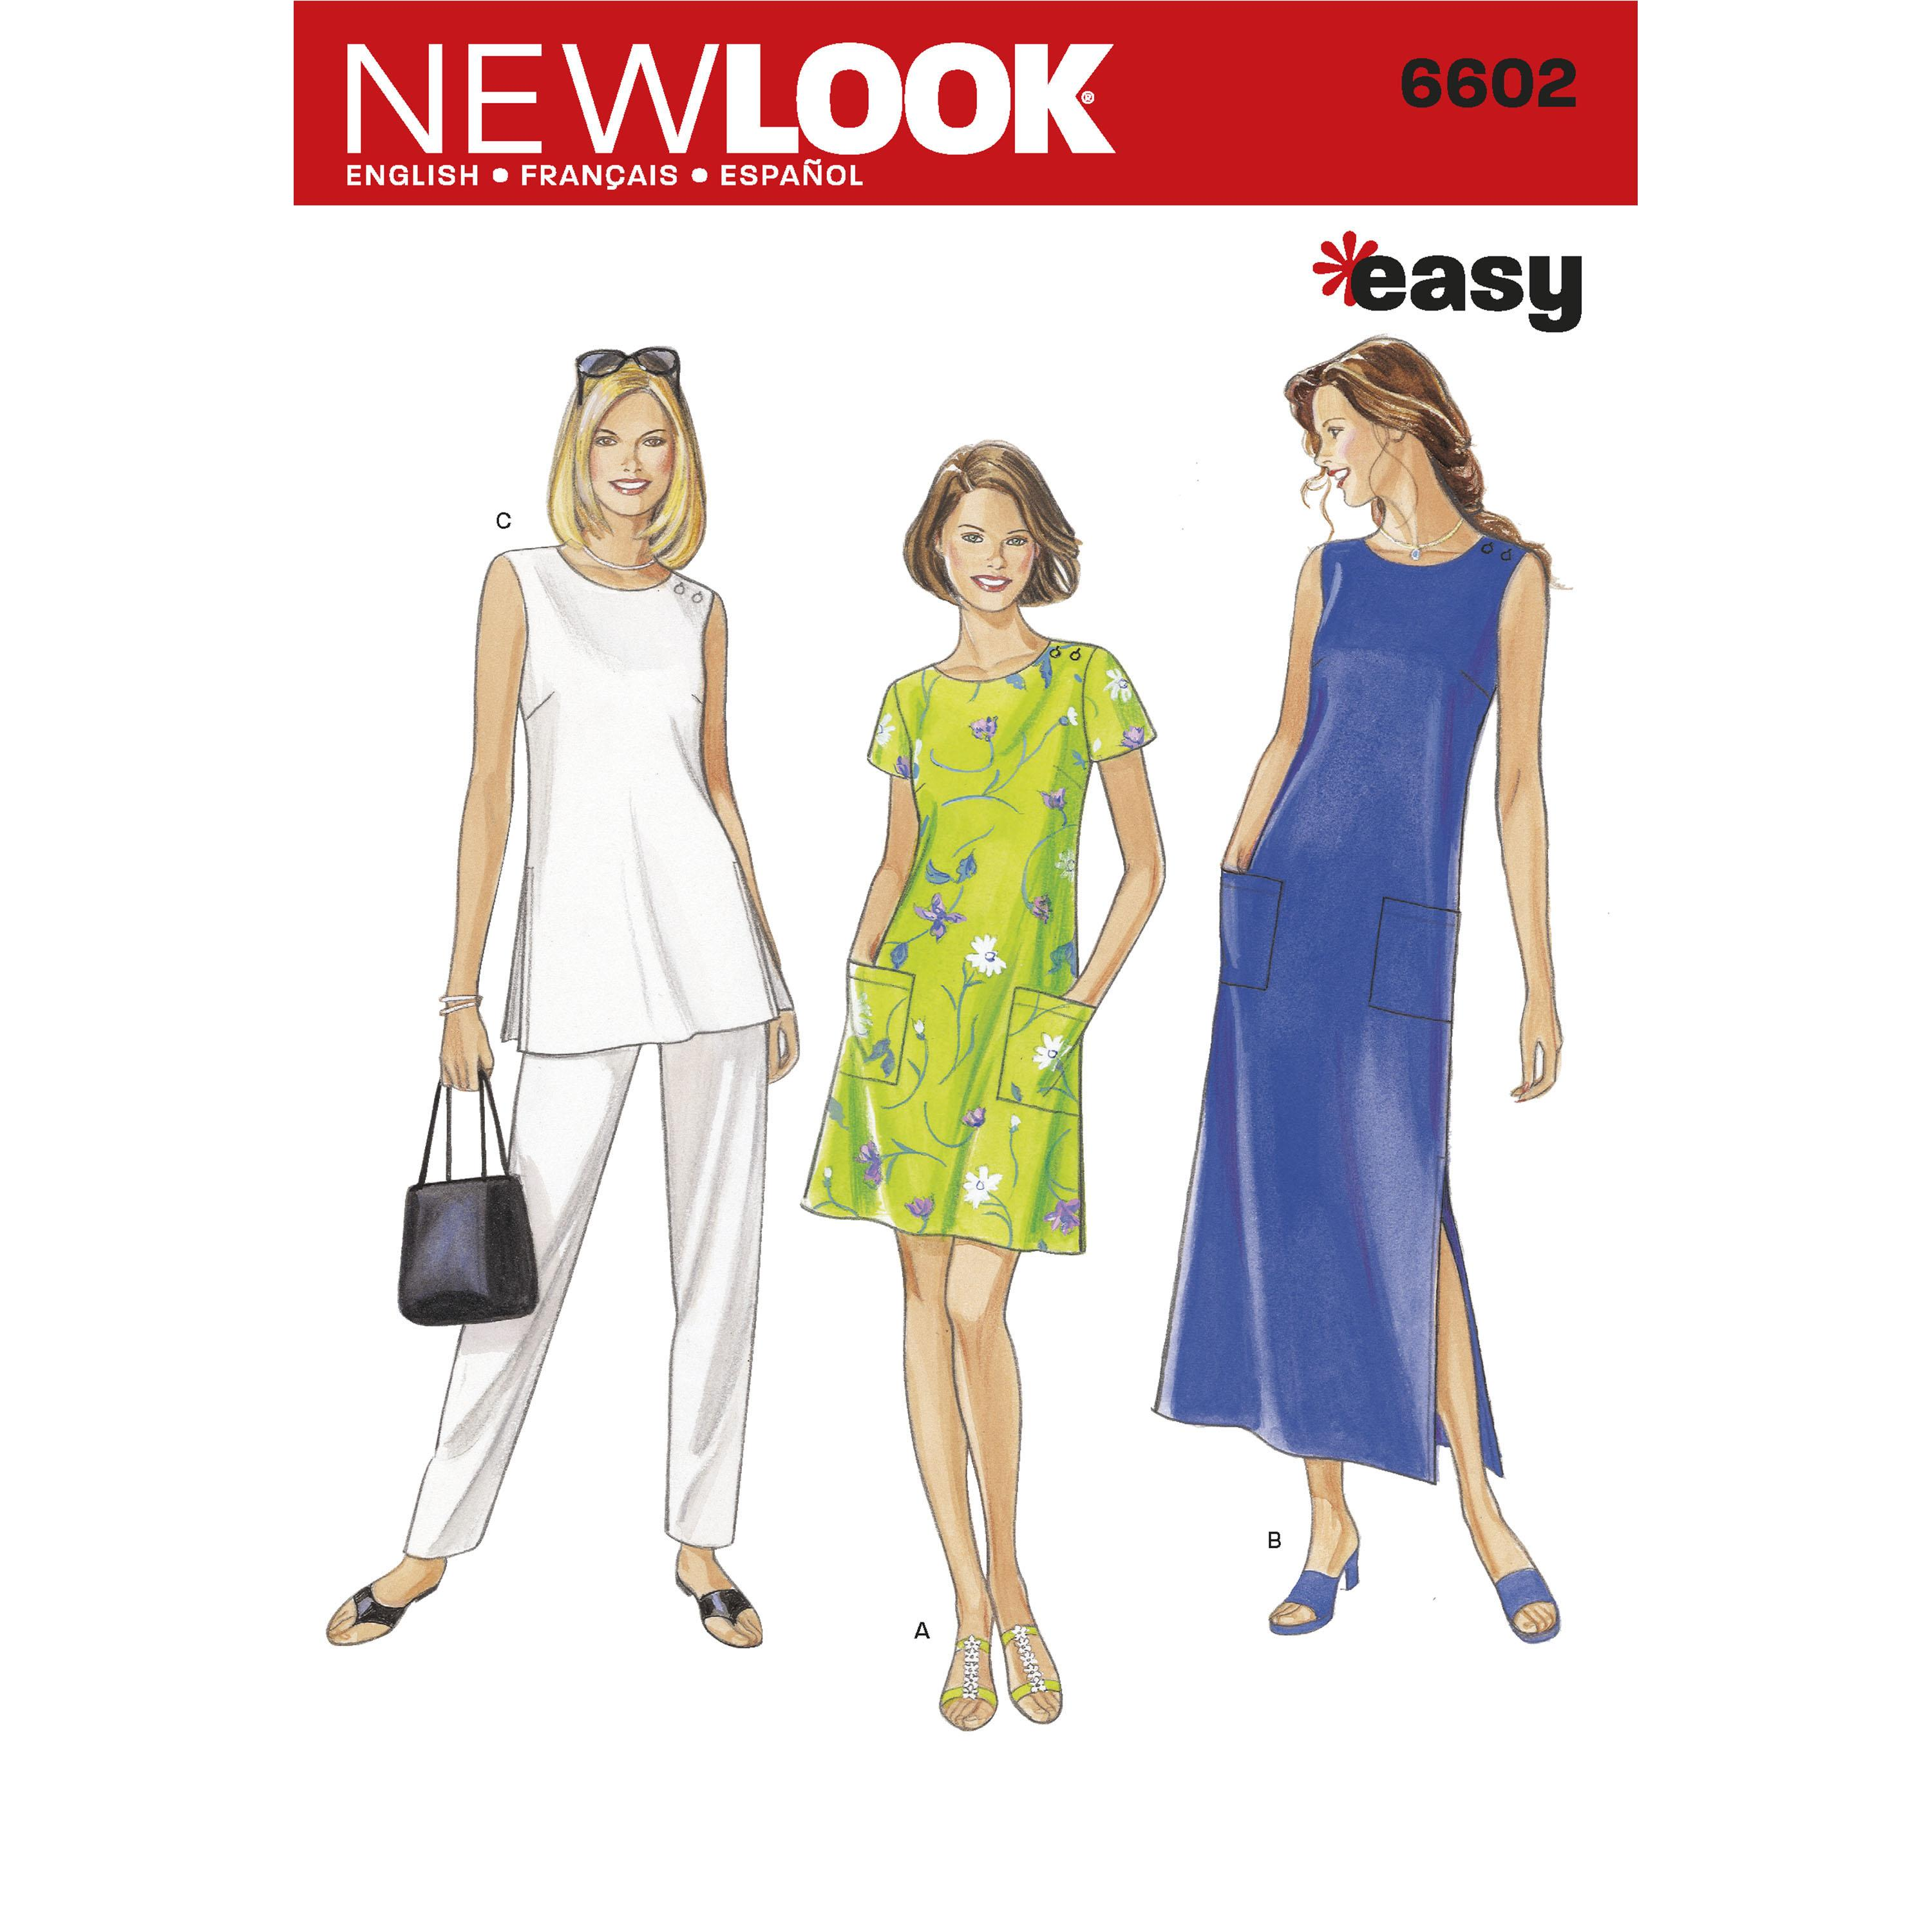 NewLook N6602 Misses Dresses